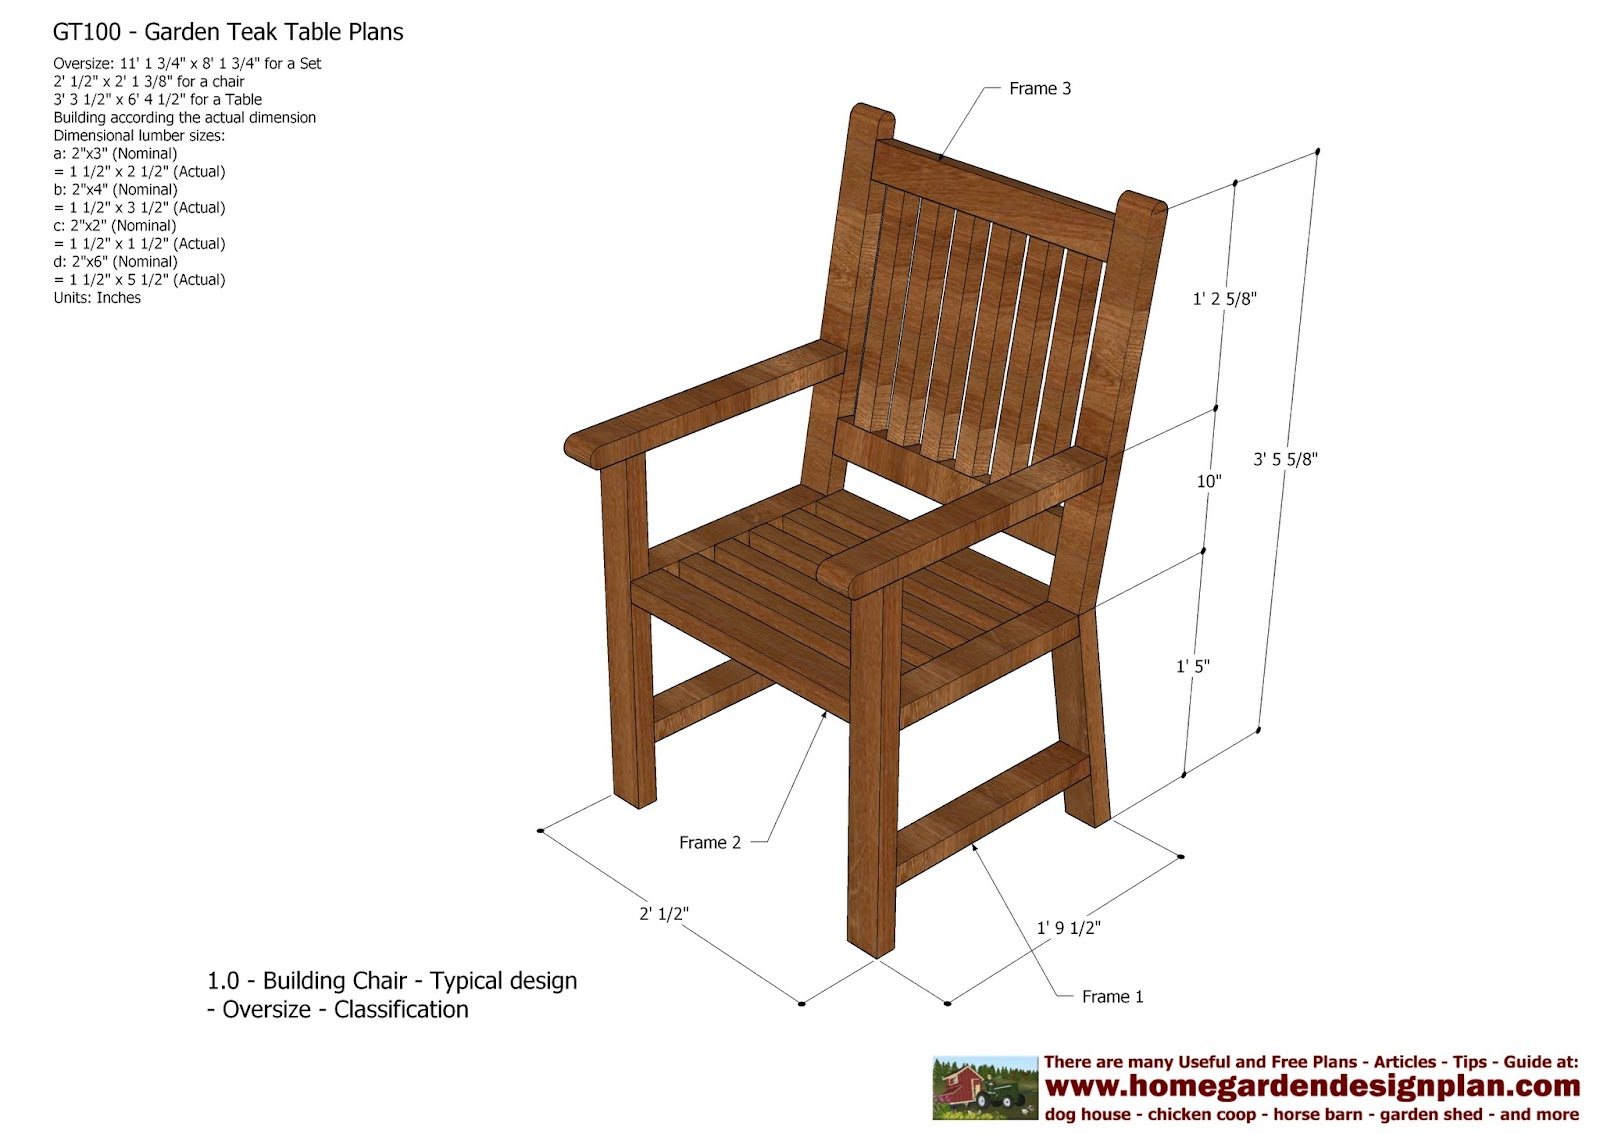 Bench Wood: Learn Woodworking plans for outdoor seating